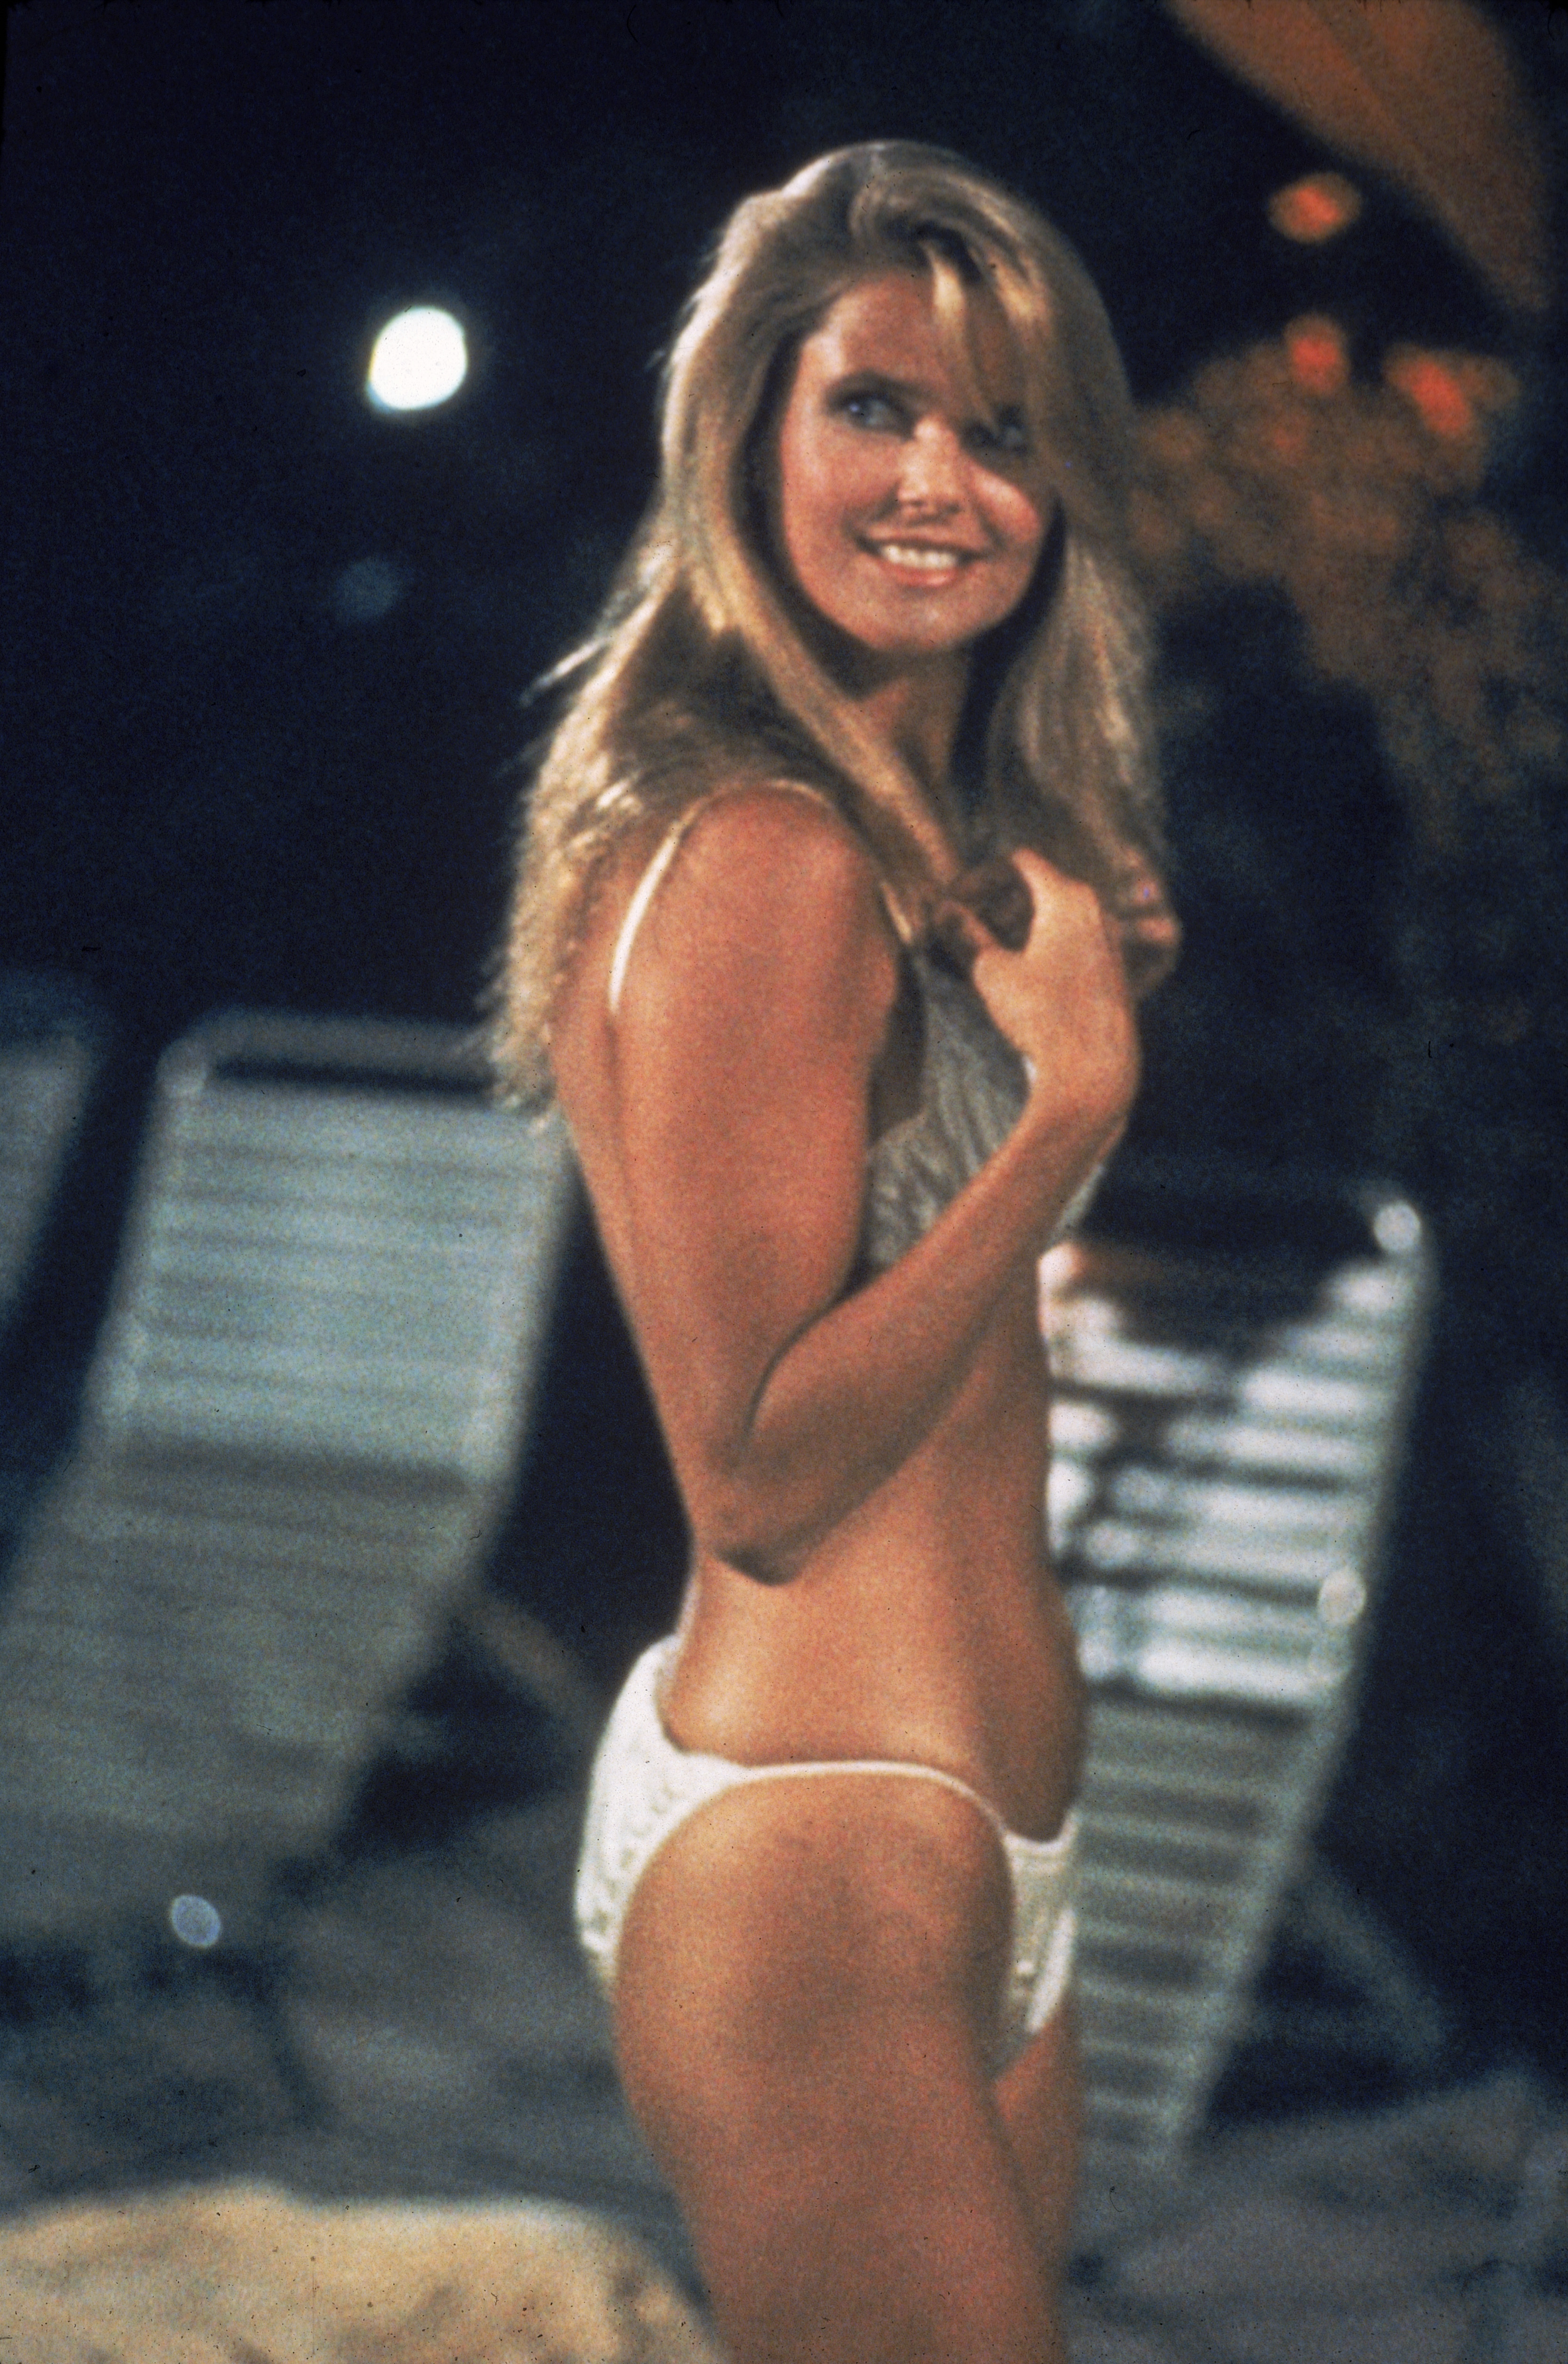 Christie Brinkley In Swimsuit From 'Vacation'